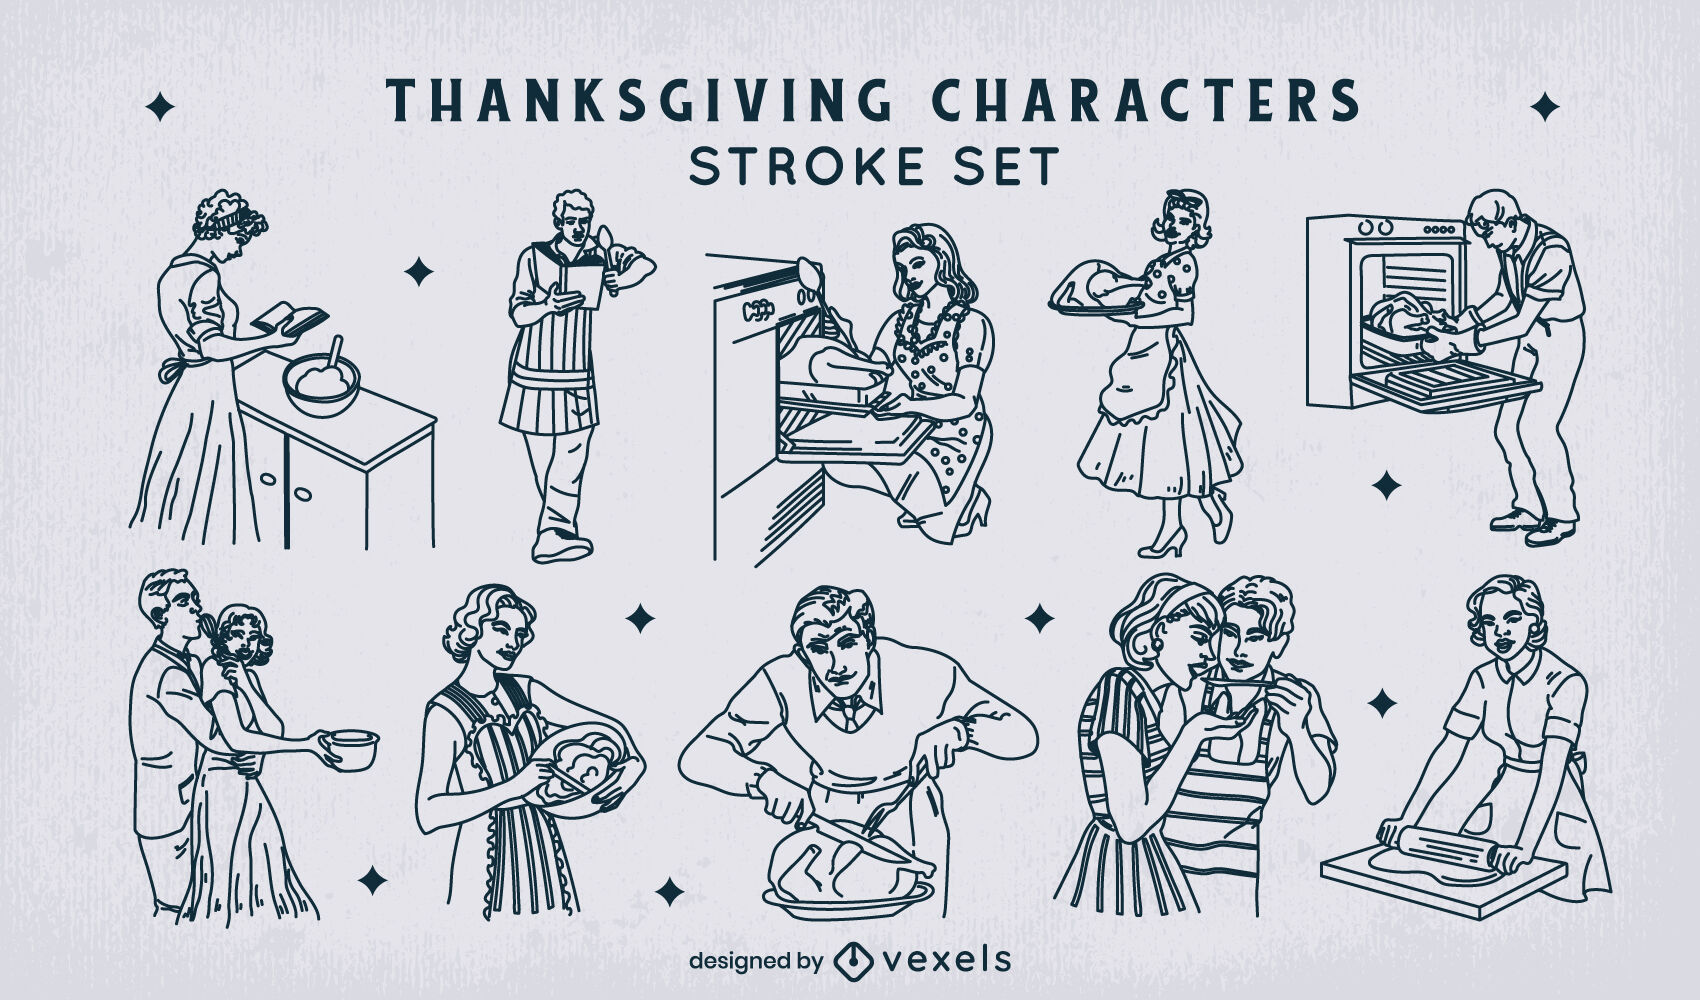 Thanksgiving holiday 50s characters stroke set